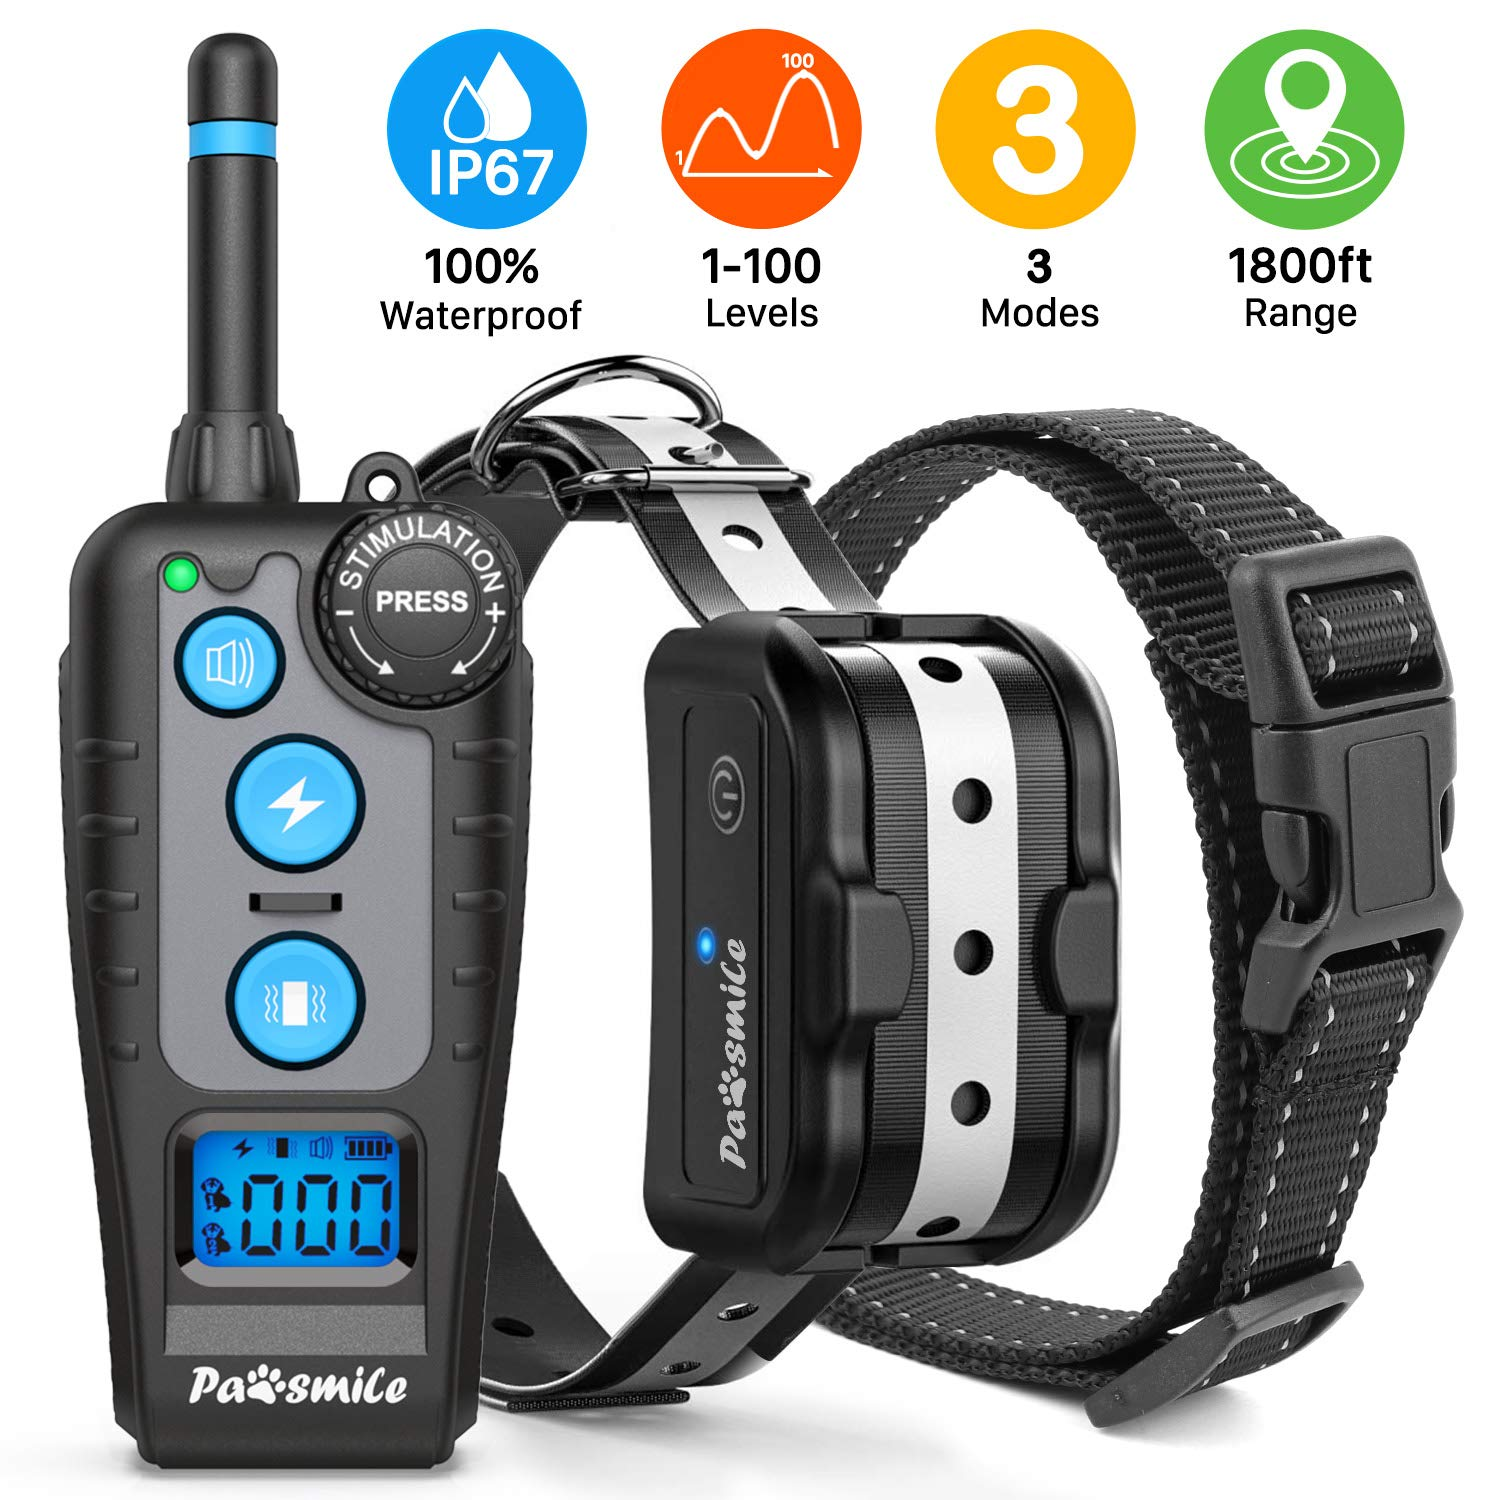 Dog Training Collar with Remote, Rechargeable Dog Shock Collar with 3 Training Modes, Beep, Vibration and Shock 1-100 Levels, 100% Waterproof 1800ft Shock Collar for Dogs Small, Medium and Large Size